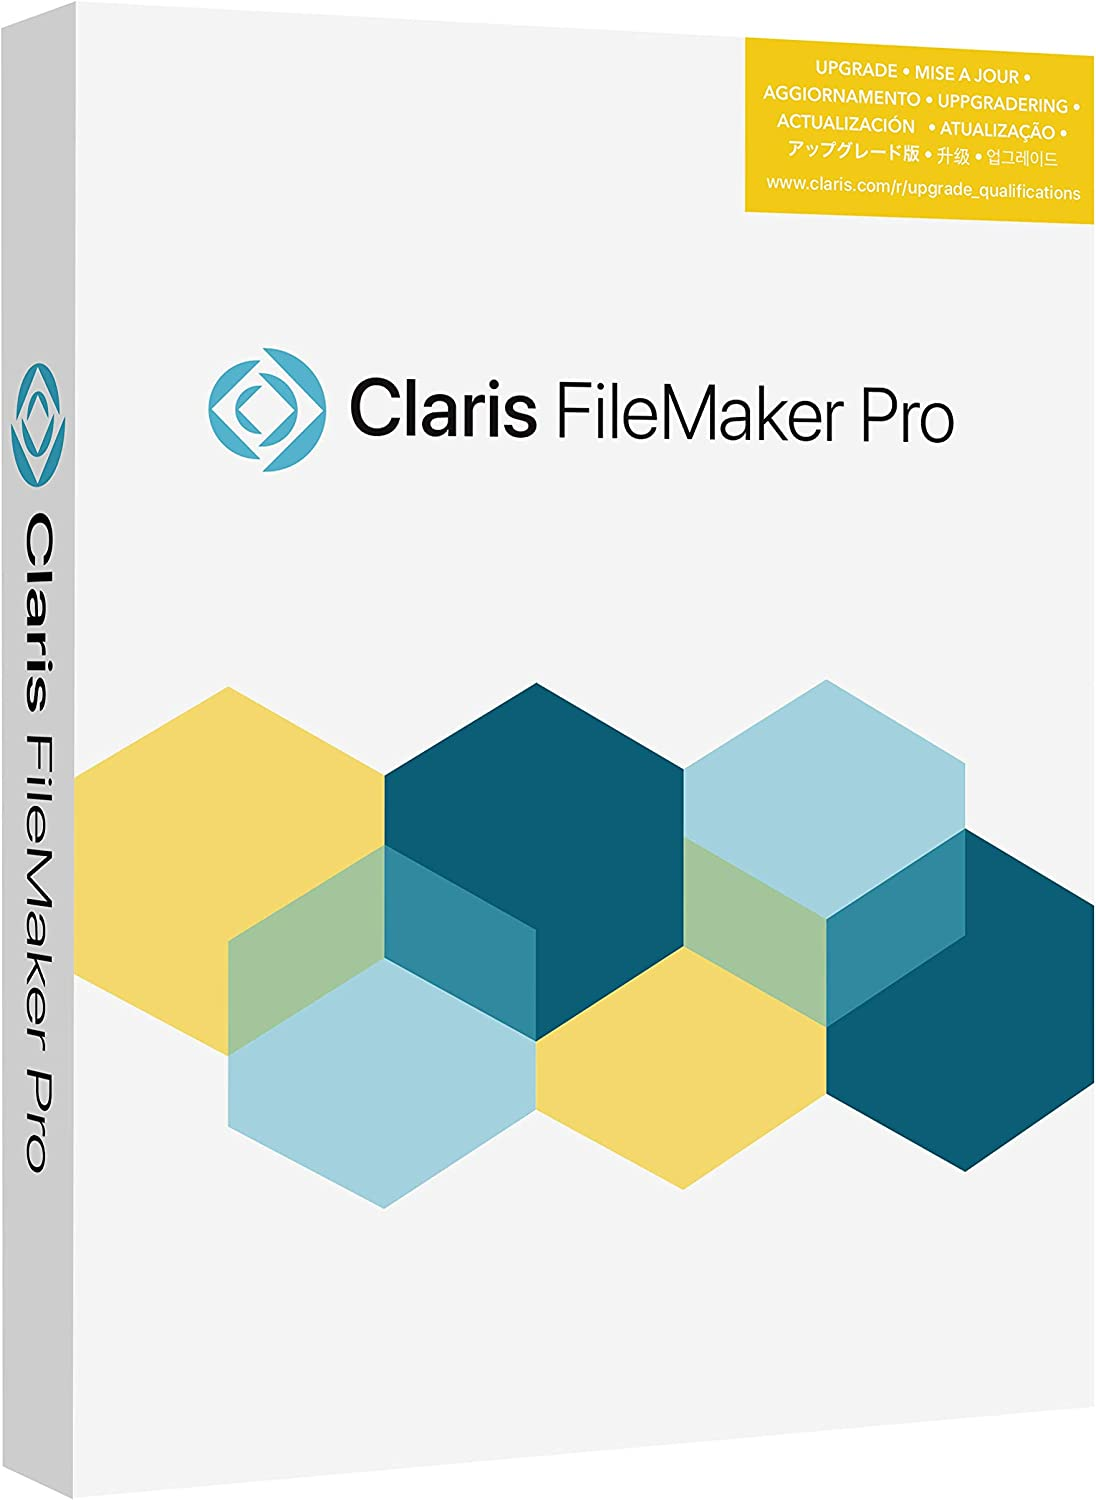 Claris FileMaker Pro 19 Advanced Upgrade ESD PC Online Code Super beauty product restock quality top Mac Max 45% OFF